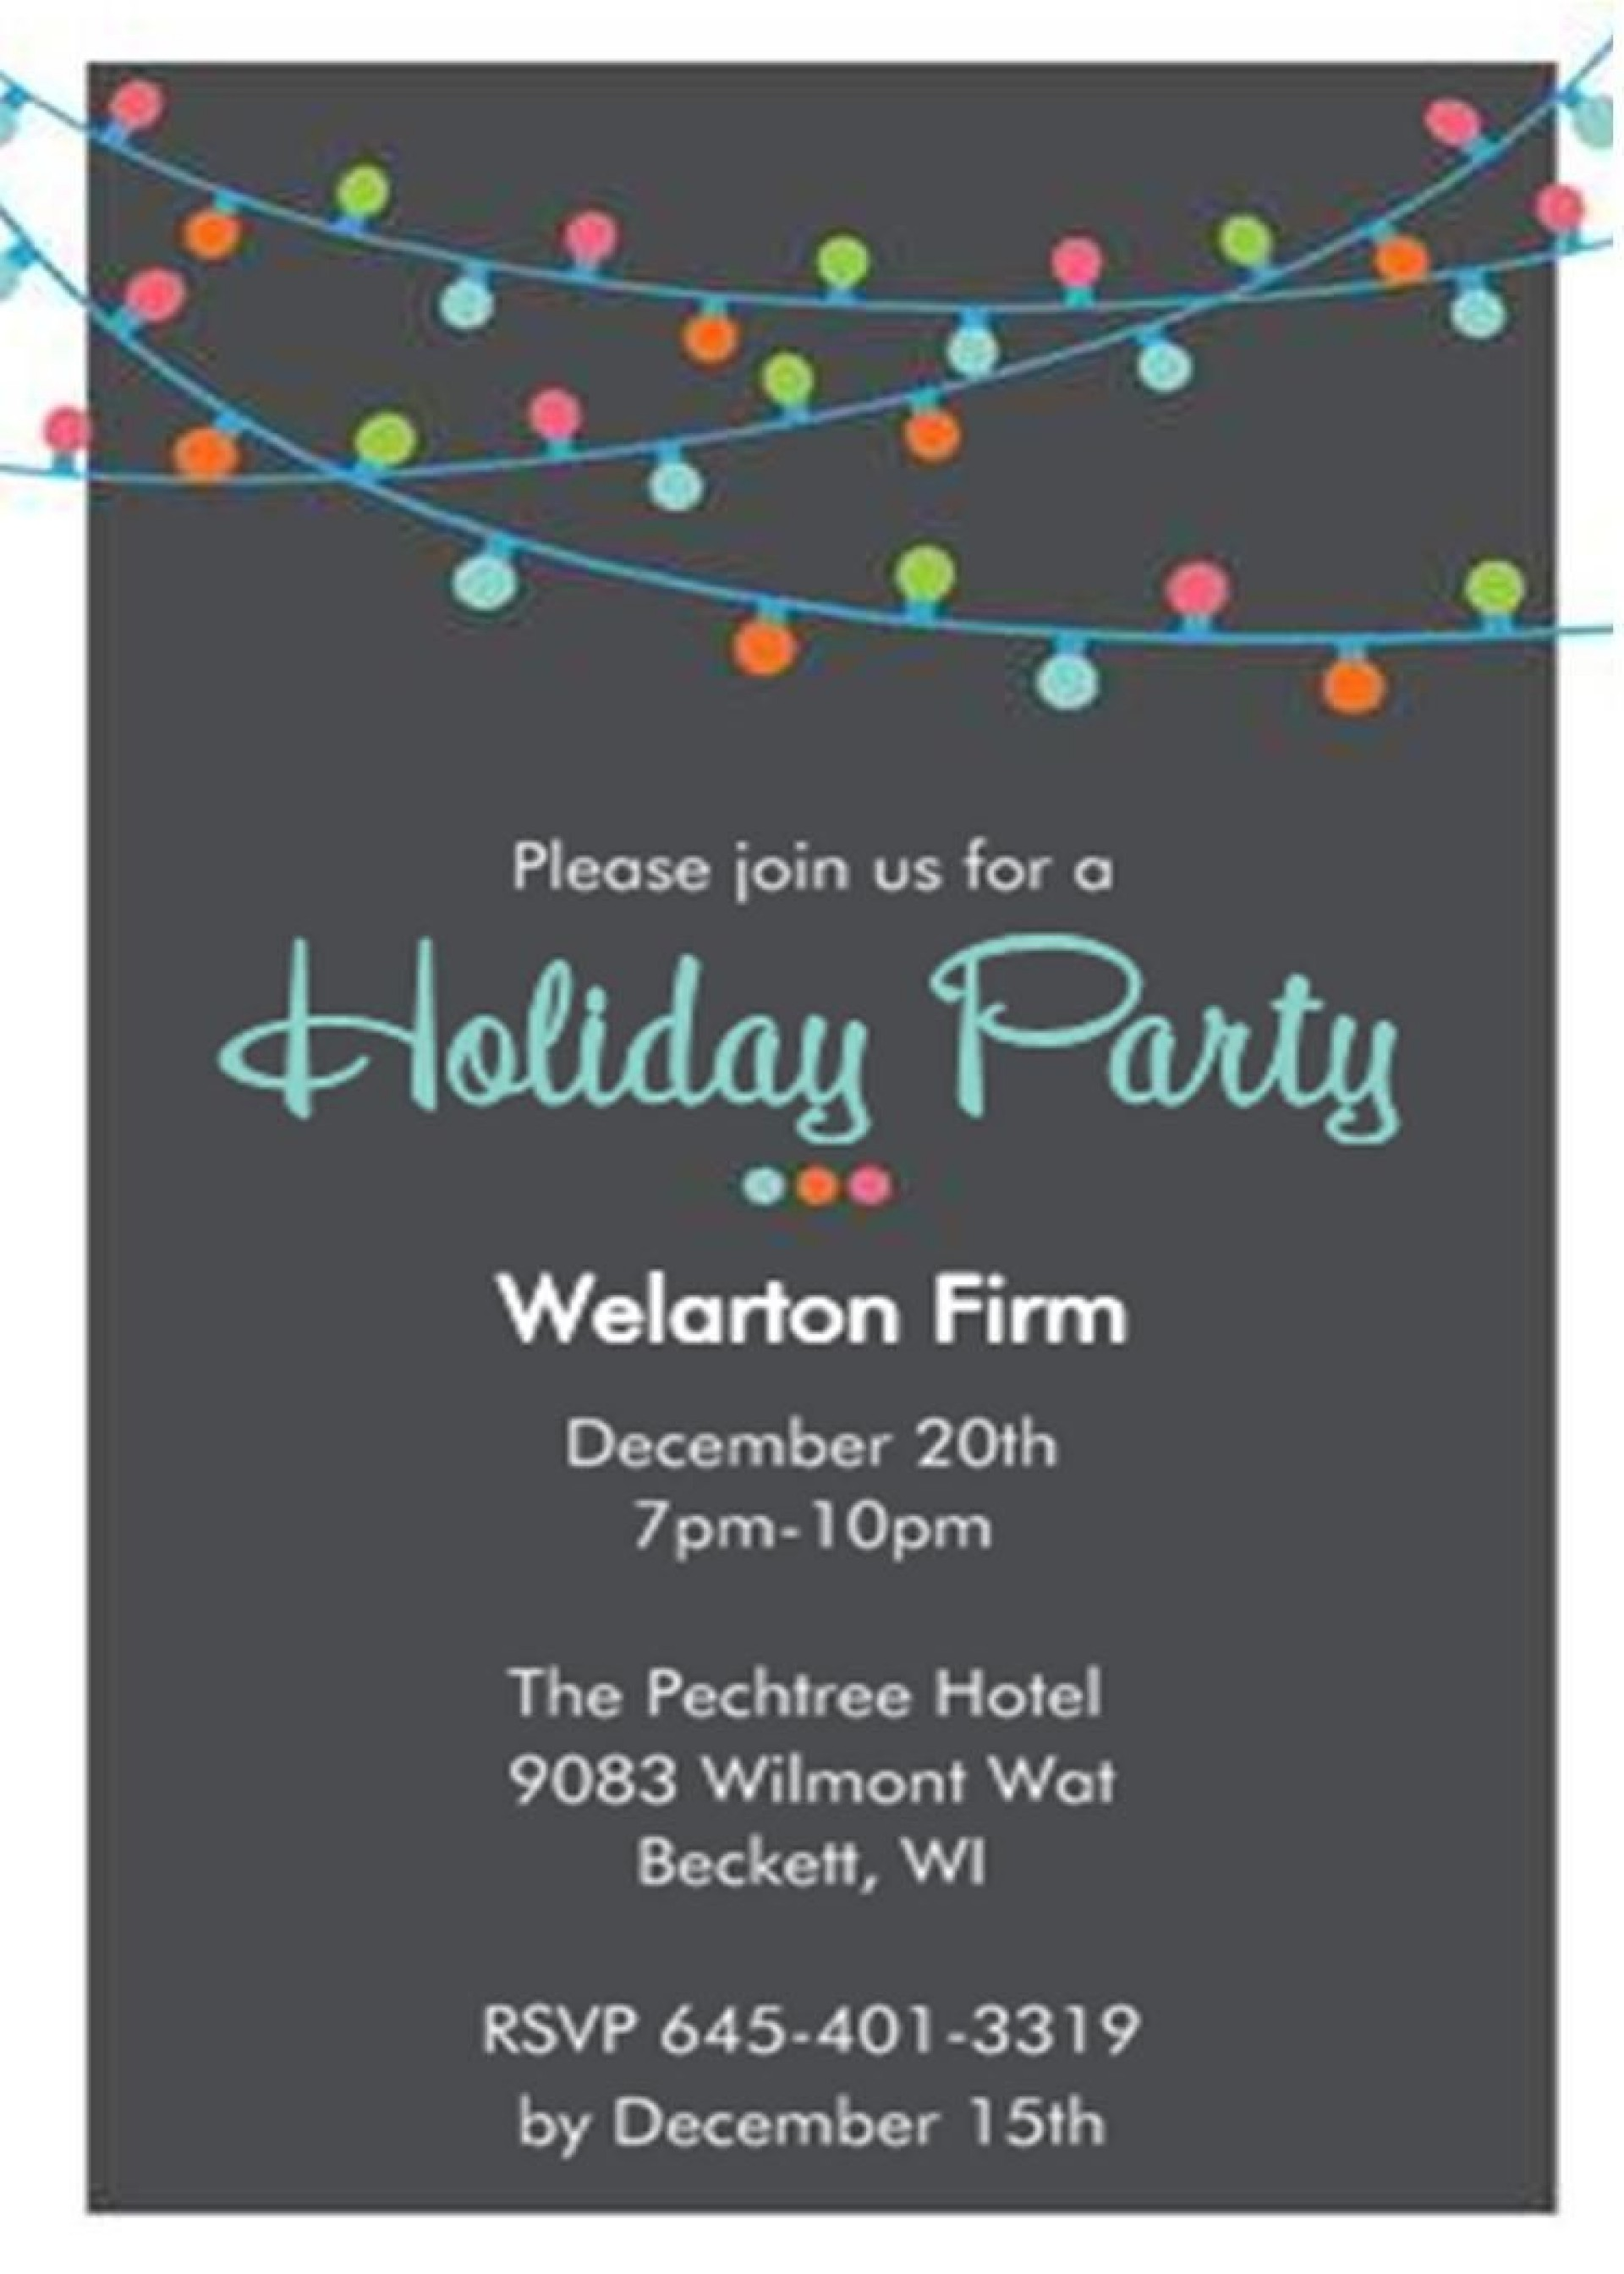 001 Incredible Office Christma Party Invitation Wording Sample Image  Holiday Example1920